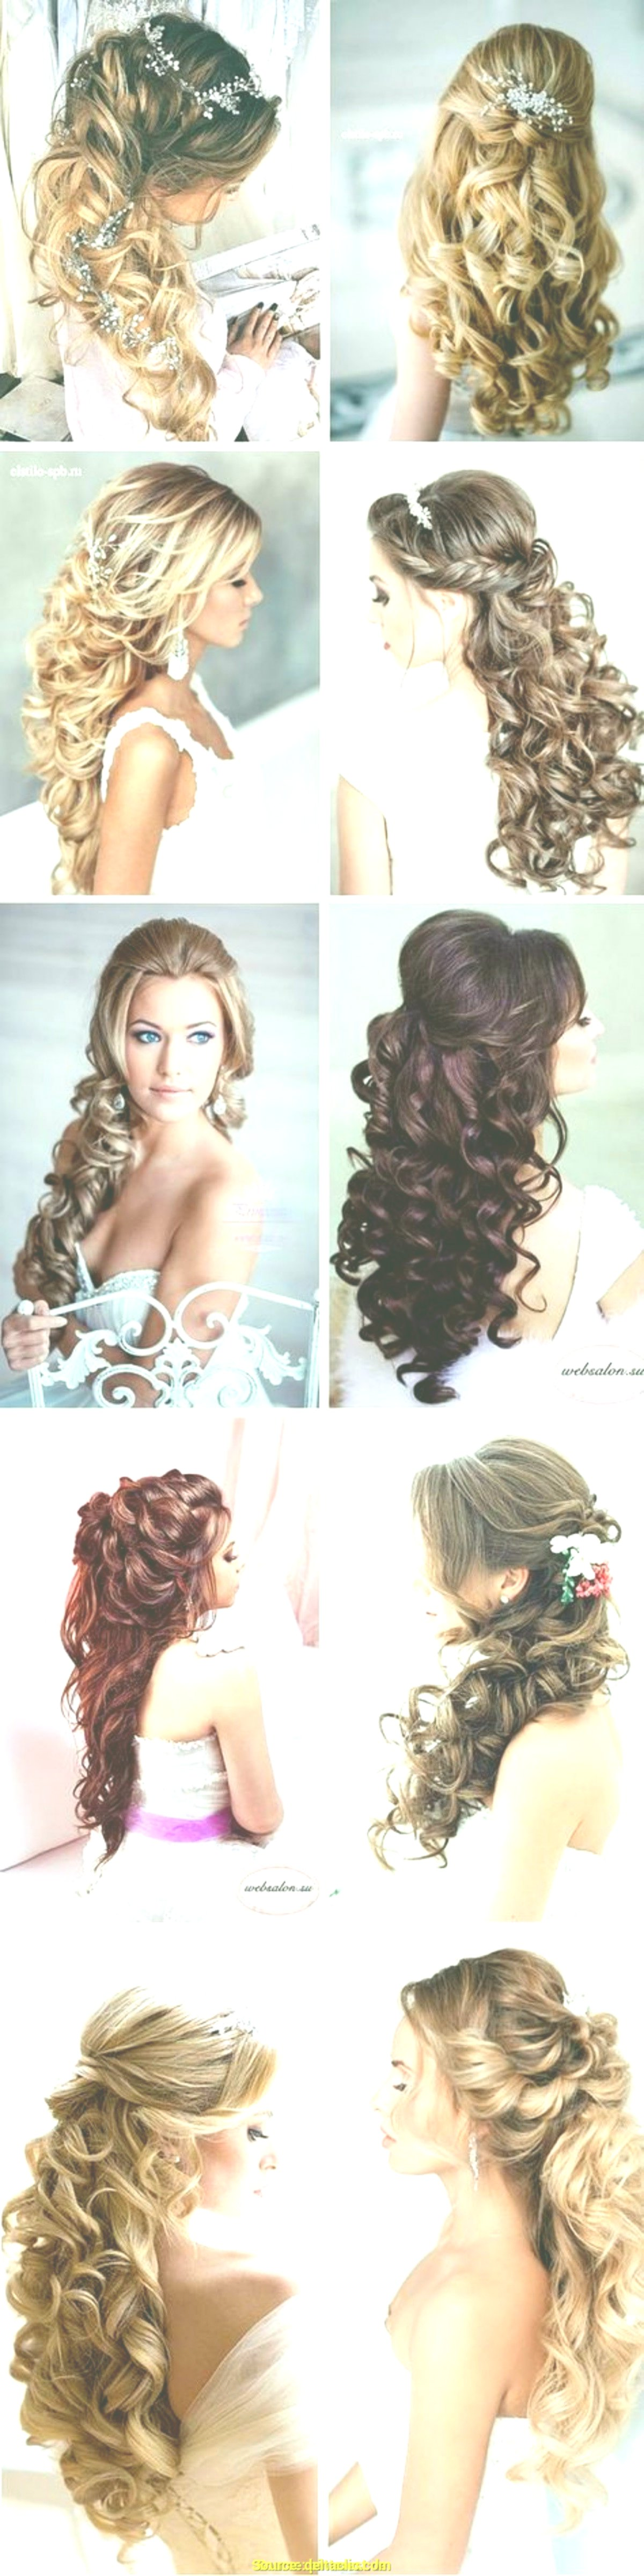 elegant simple hairstyles for shoulder-length hair concept-Cute Simple Hairstyles For Shoulder-length Hair Design